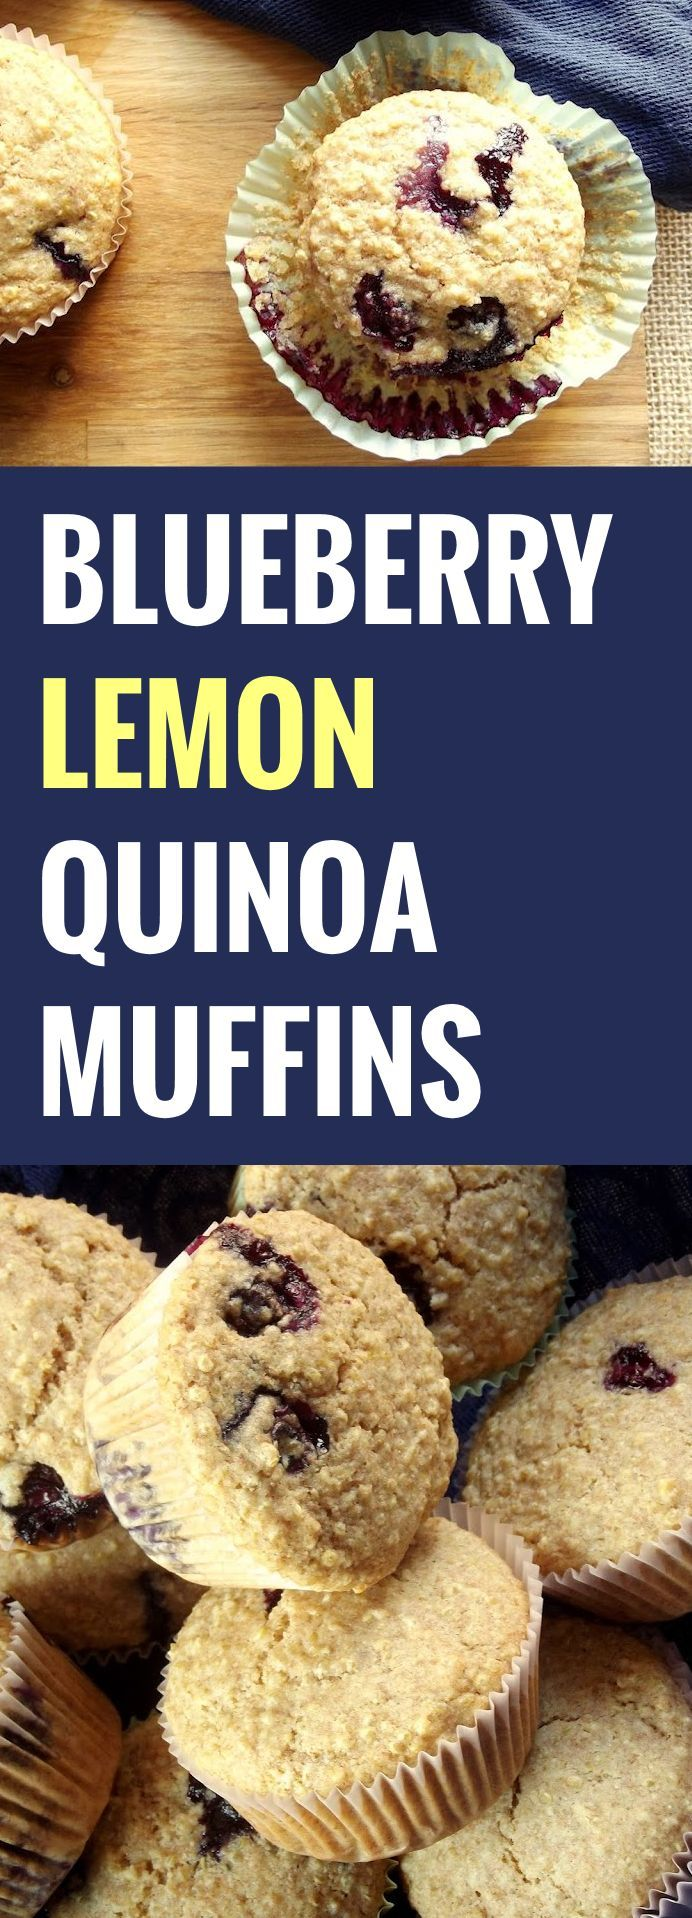 Blueberry Lemon Quinoa Muffins - instead use oat flour, honey and coconut yogurt